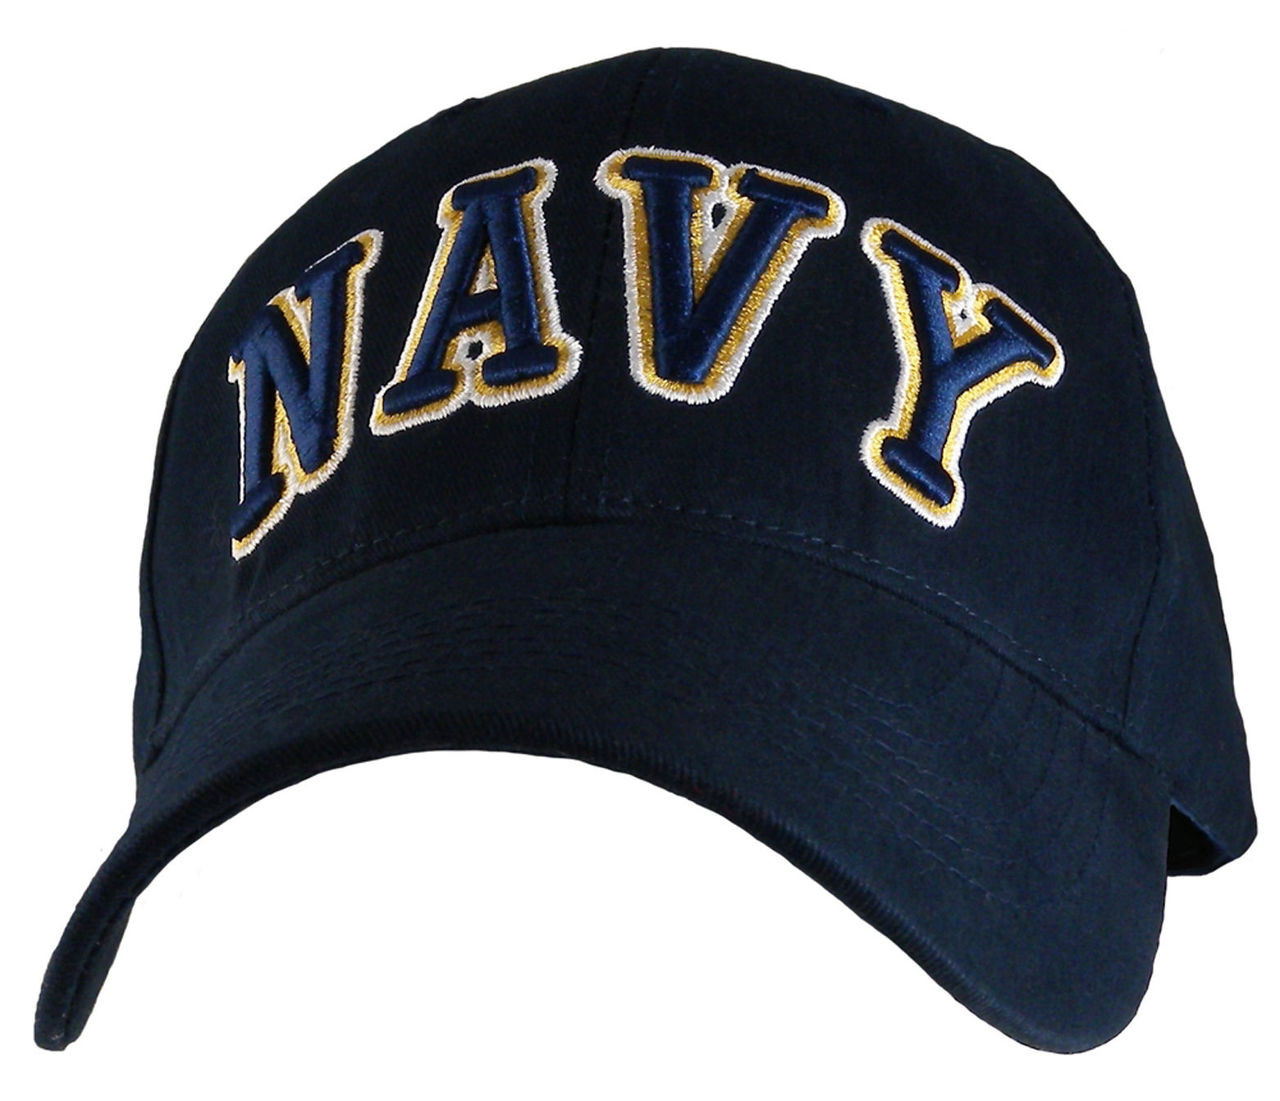 a660923a8 U.S. Navy Embroidered Letters Officially Licensed Military Hat Baseball Cap